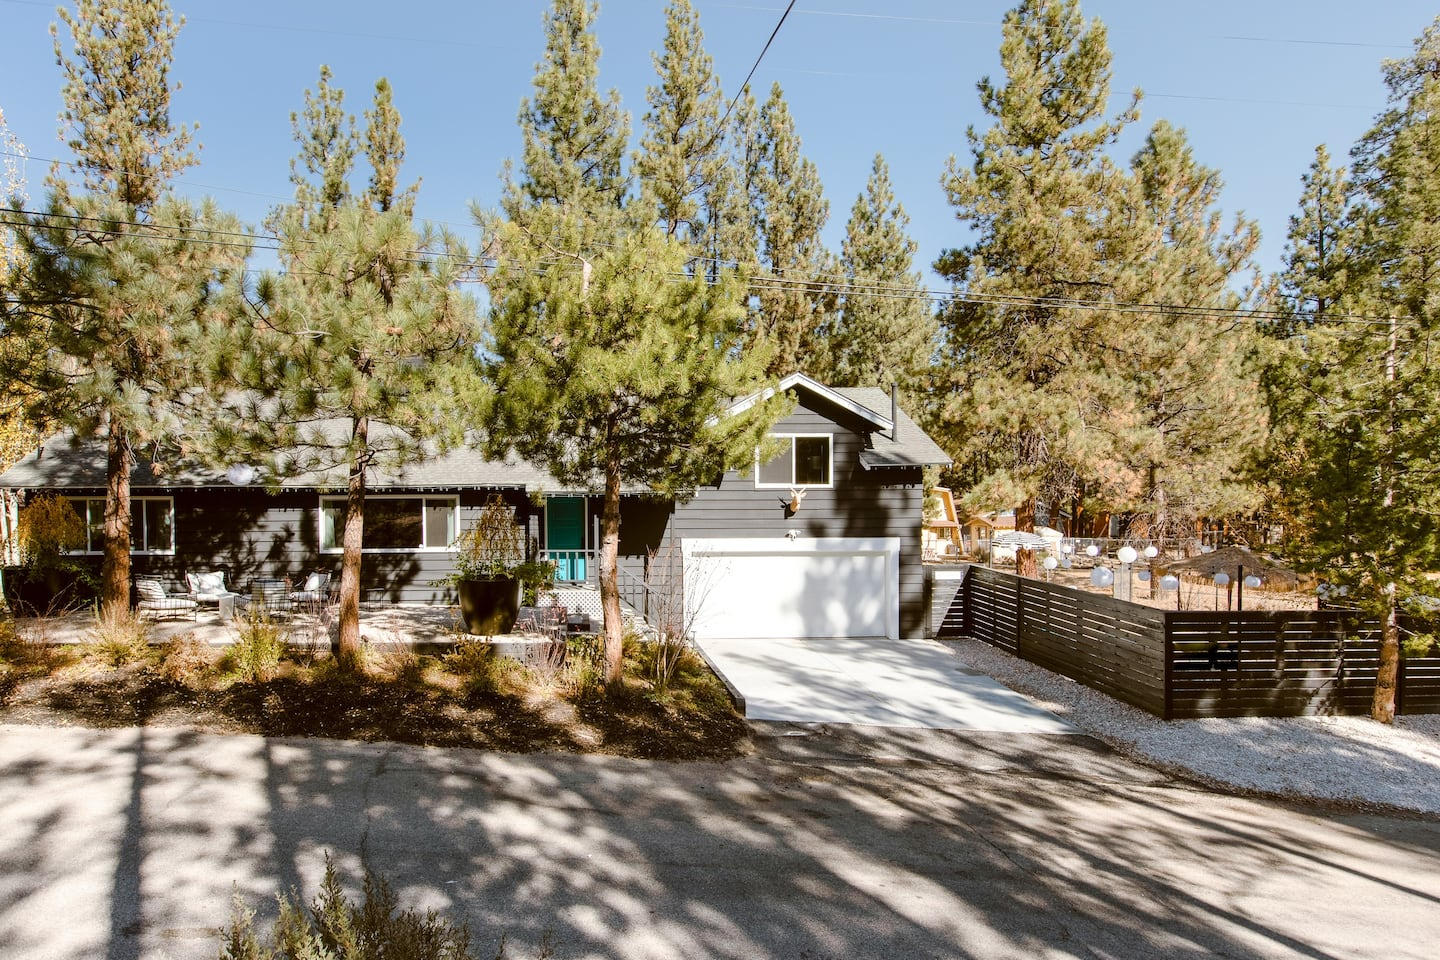 Best Big Bear Airbnb For Large Groups